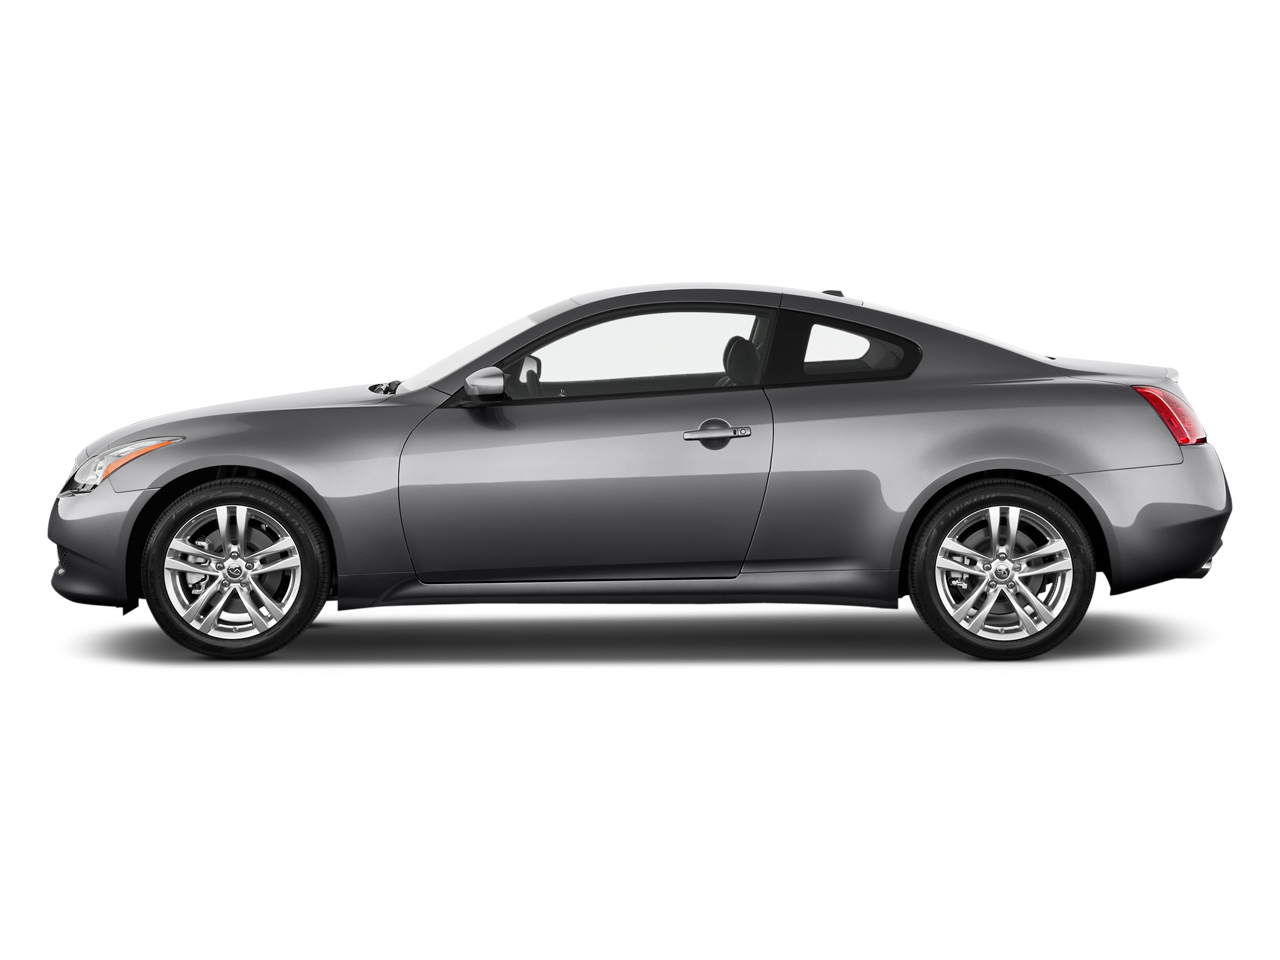 2010 infiniti g37 coupe awd effortless exhilaration intense seduction. Black Bedroom Furniture Sets. Home Design Ideas